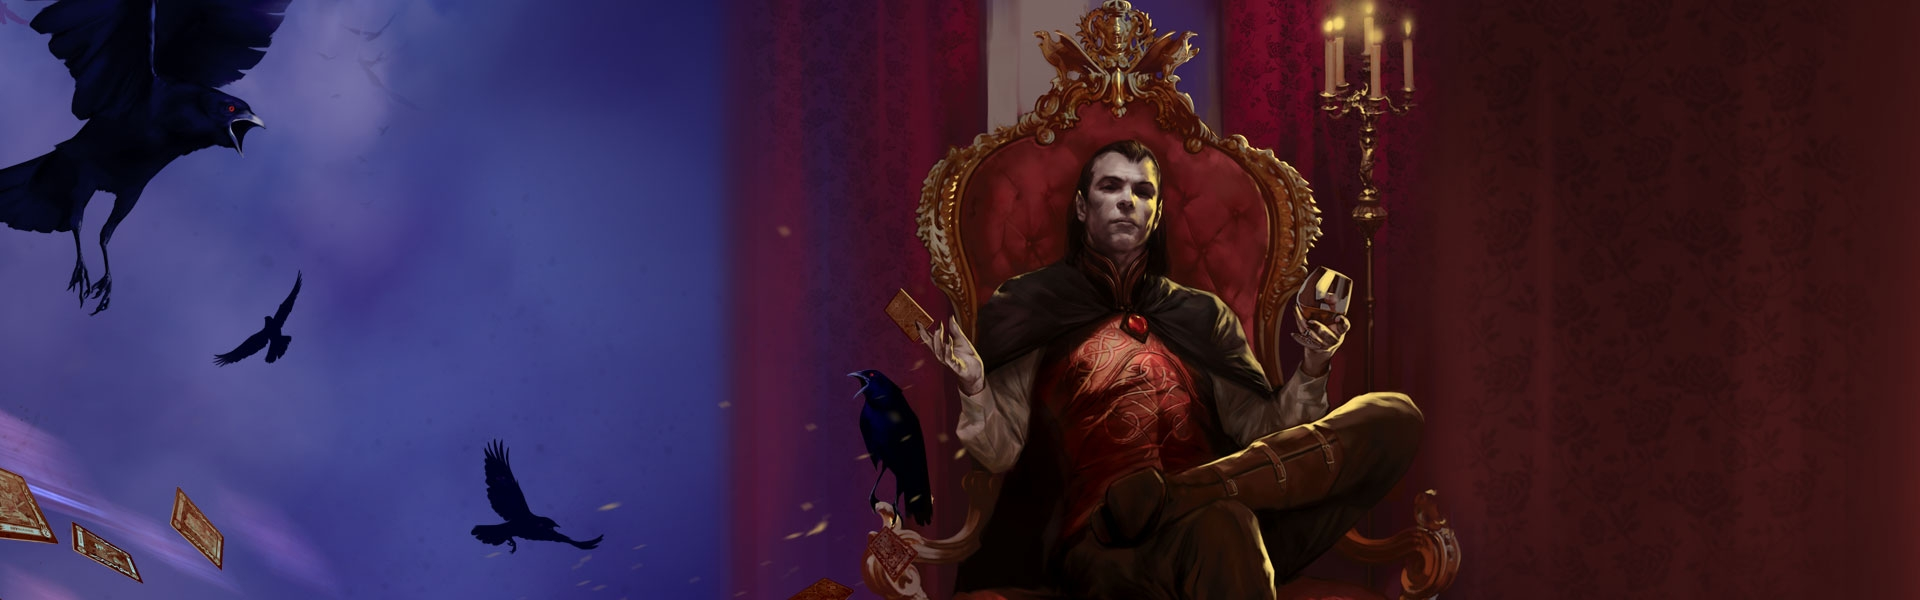 Curse of Strahd Revamped disponibile da oggi thumbnail